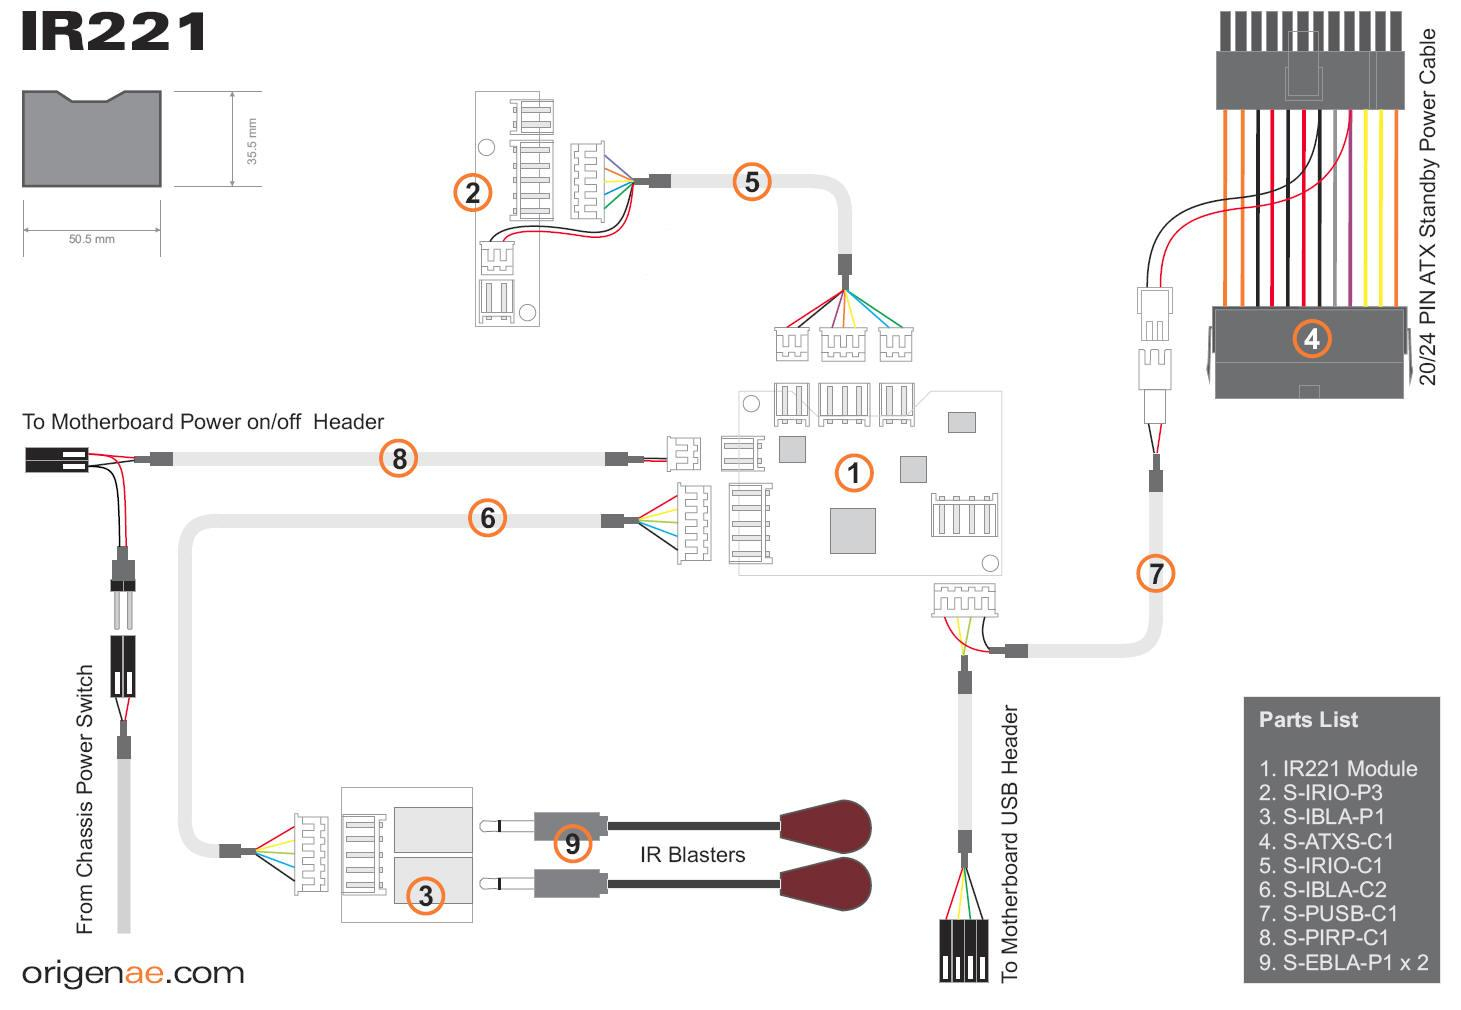 Sata Connector Wiring Diagram | Manual E-Books - Sata To Usb Wiring Diagram